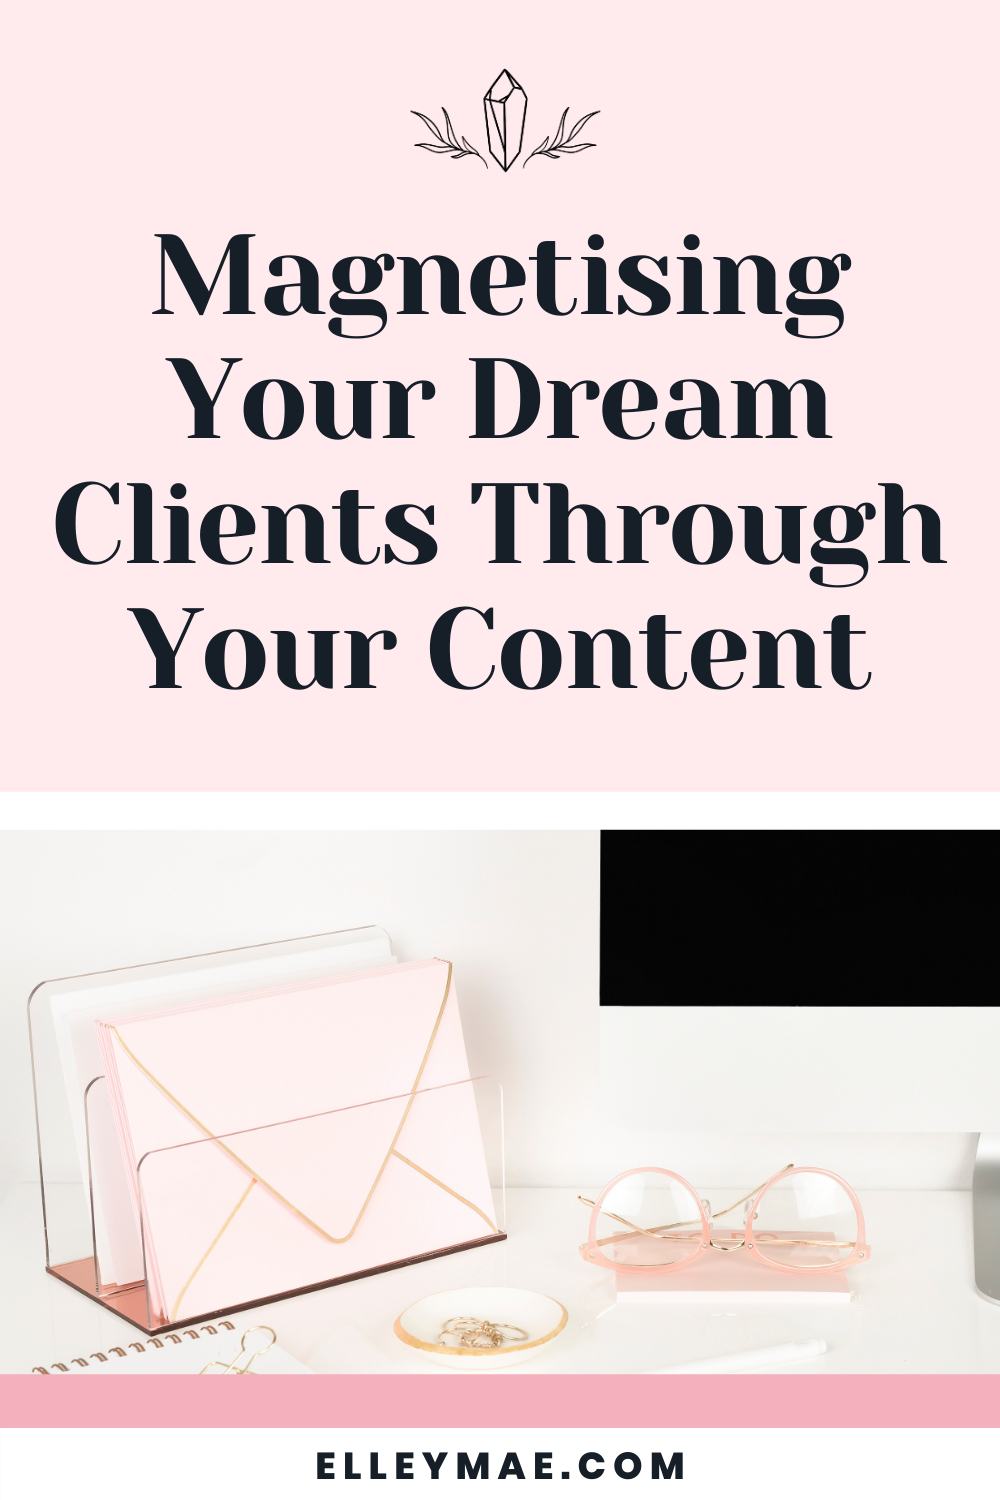 062. How to Magnetise Your Dream Clients With Your Content